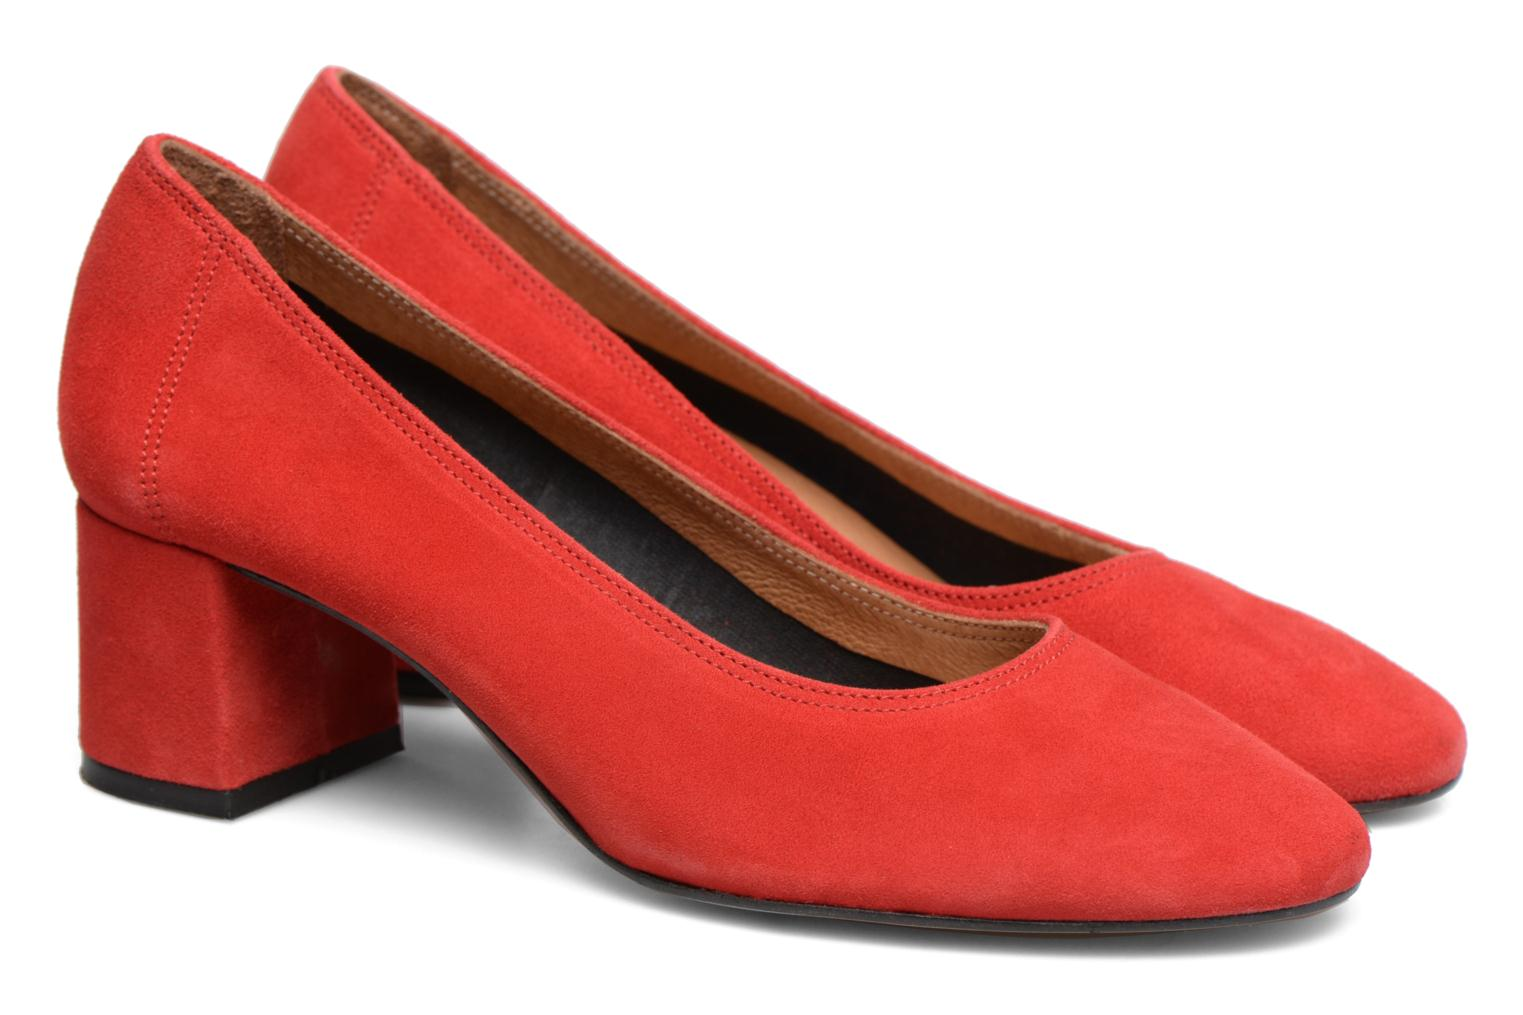 Crazy Seventy #10 cuir velours rouge